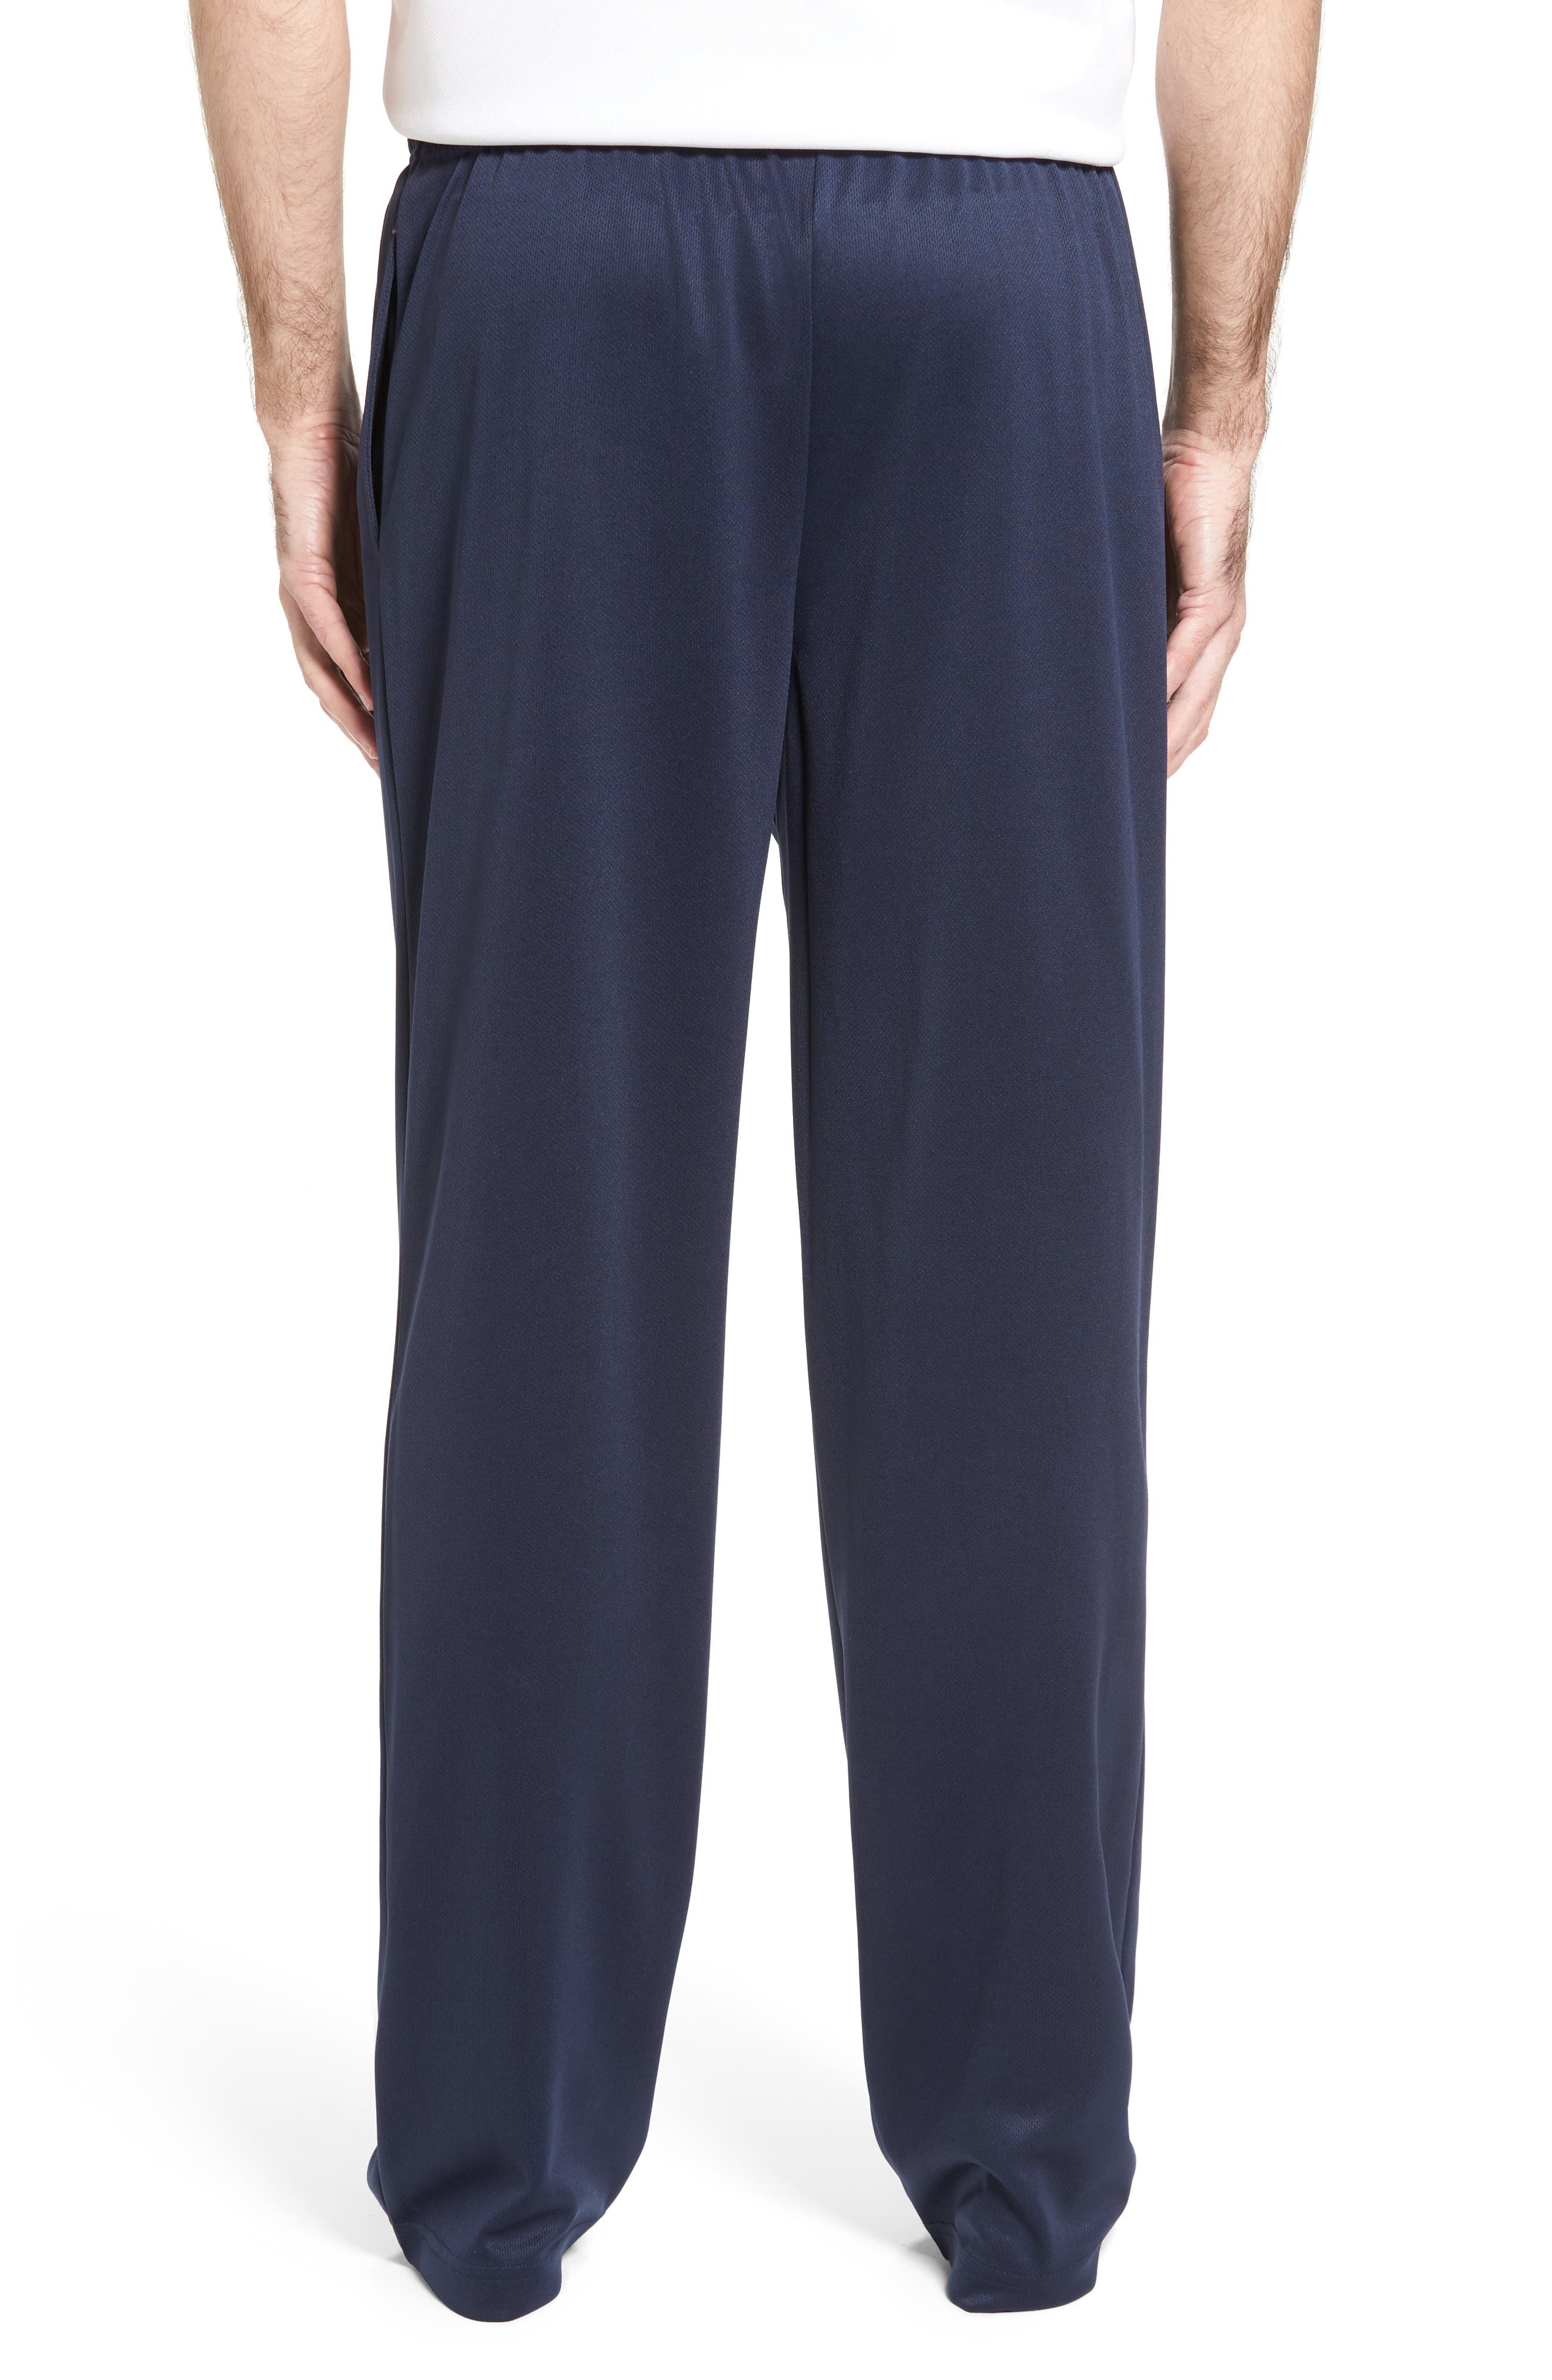 Work Out Lounge Pants,                             Alternate thumbnail 2, color,                             Navy